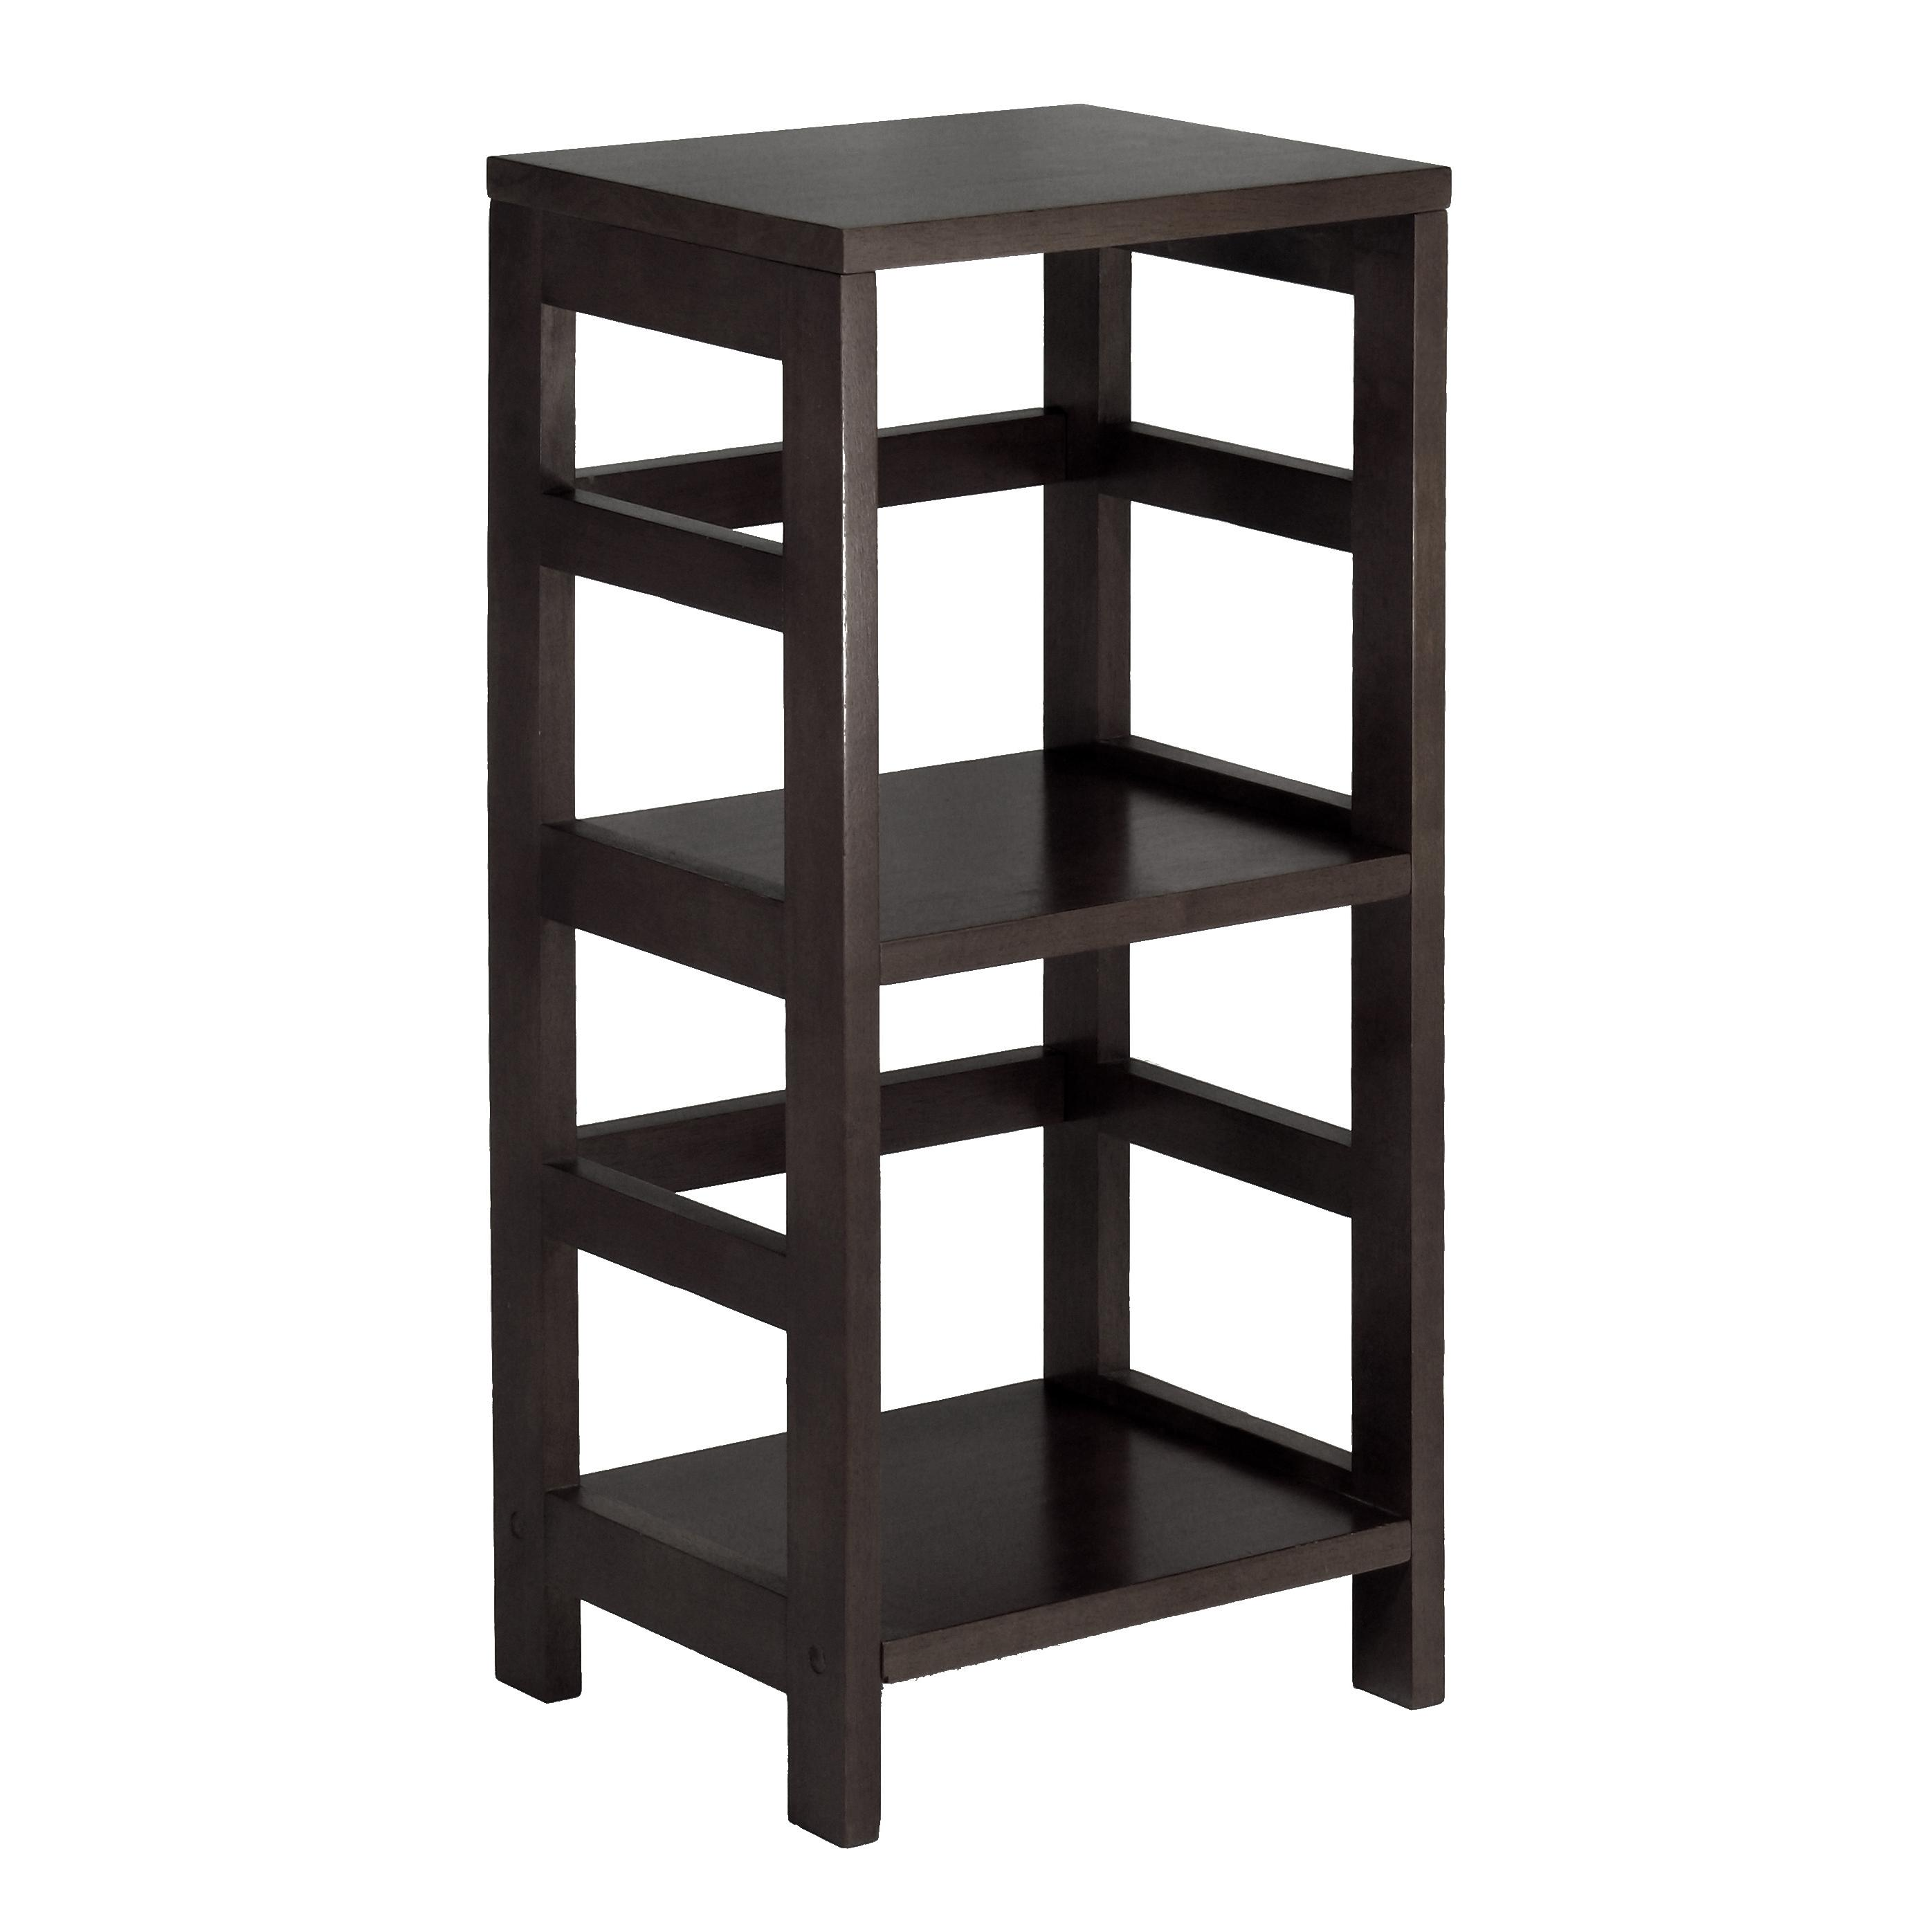 Amazon.com: Winsome Wood Shelf, Espresso: Kitchen & Dining